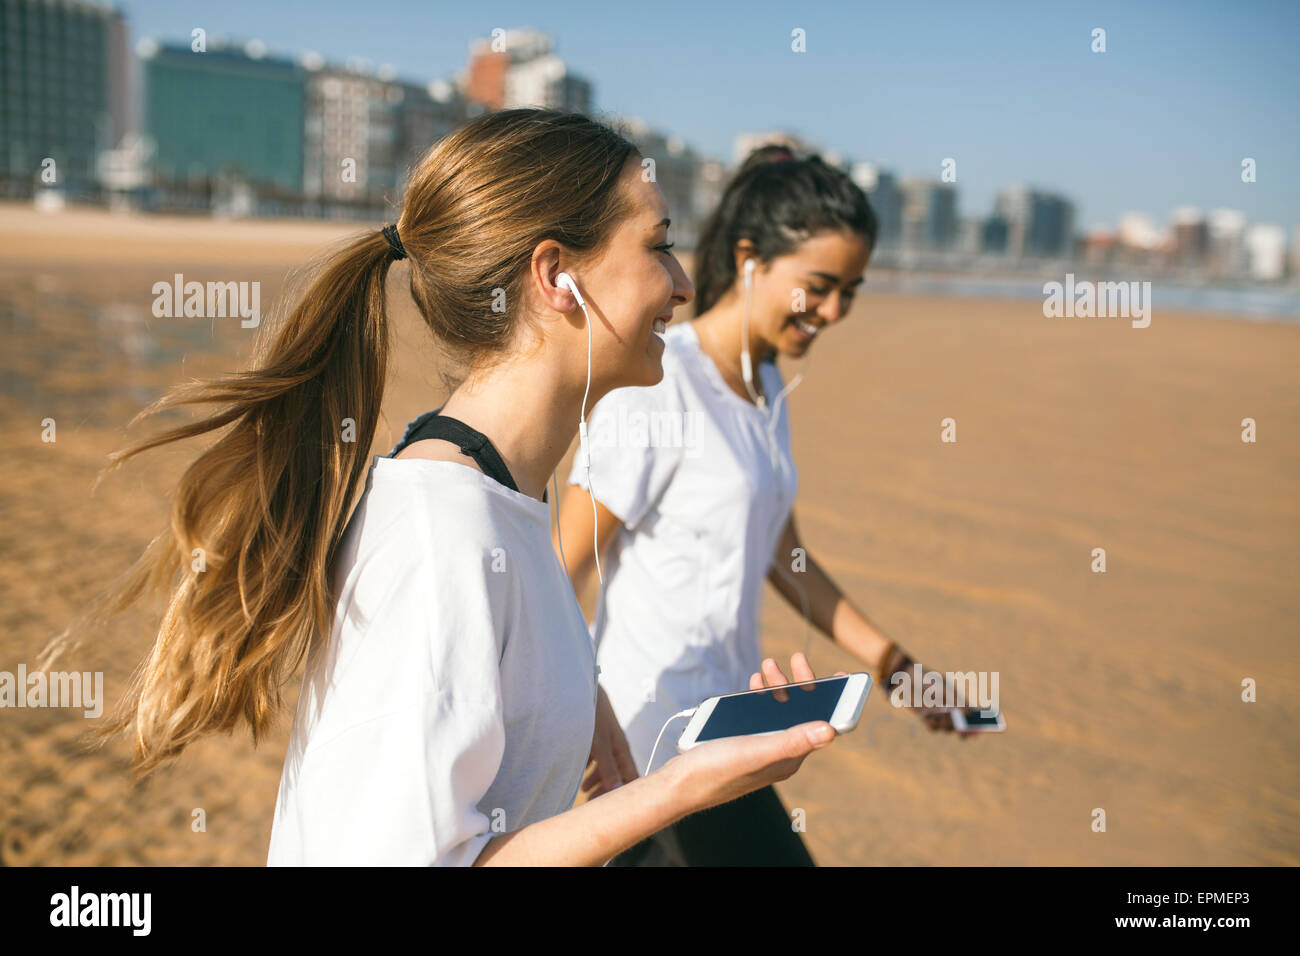 Spain, Gijon, two sportive young women with earbuds on the beach - Stock Image